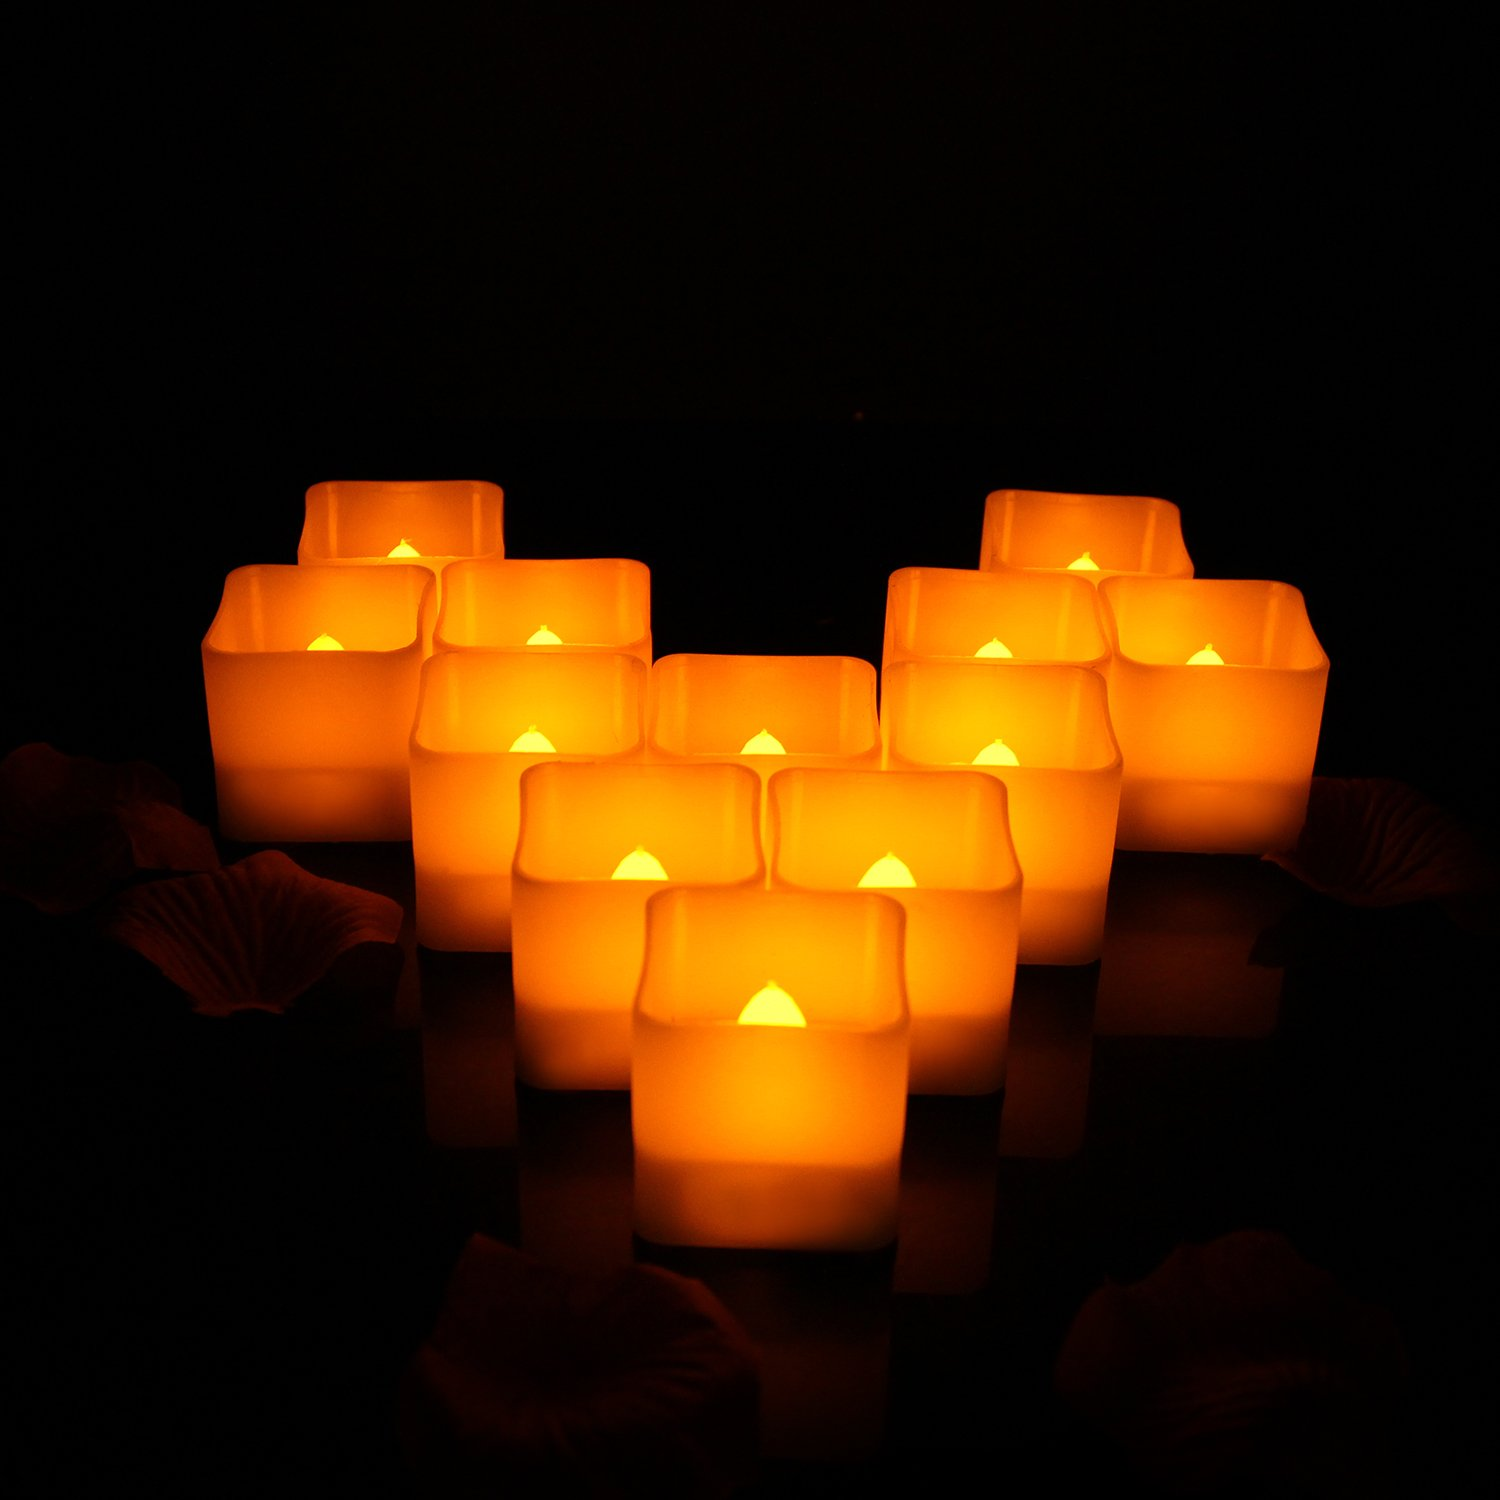 Horeset 12pcs Flameless Candle Yellow Plastic Flickering LED Tea Lights Faux Square Battery Operated Electric Lights, Fake LED candle for Home Decor, Weddings, Birthday, Home Party Gifts(S/M/L)